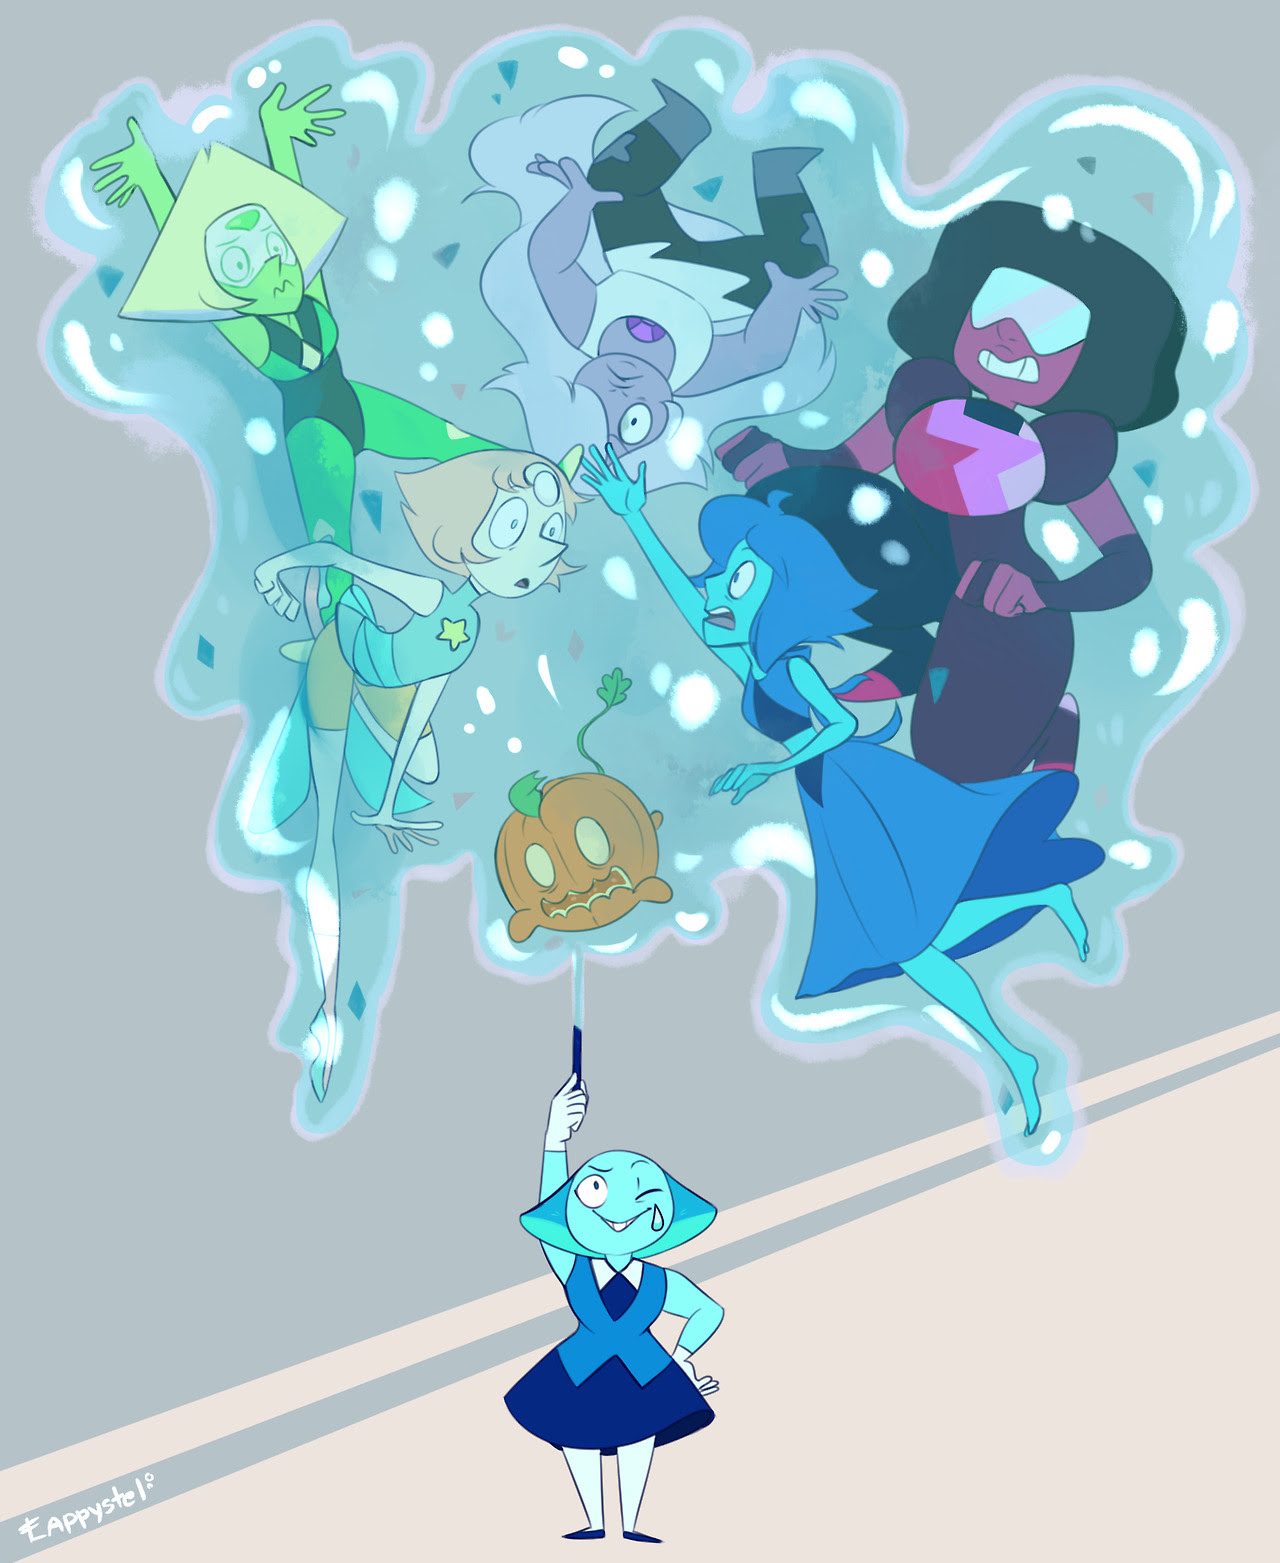 Aquamarine so OP she could take down the Diamonds if she wanted to.